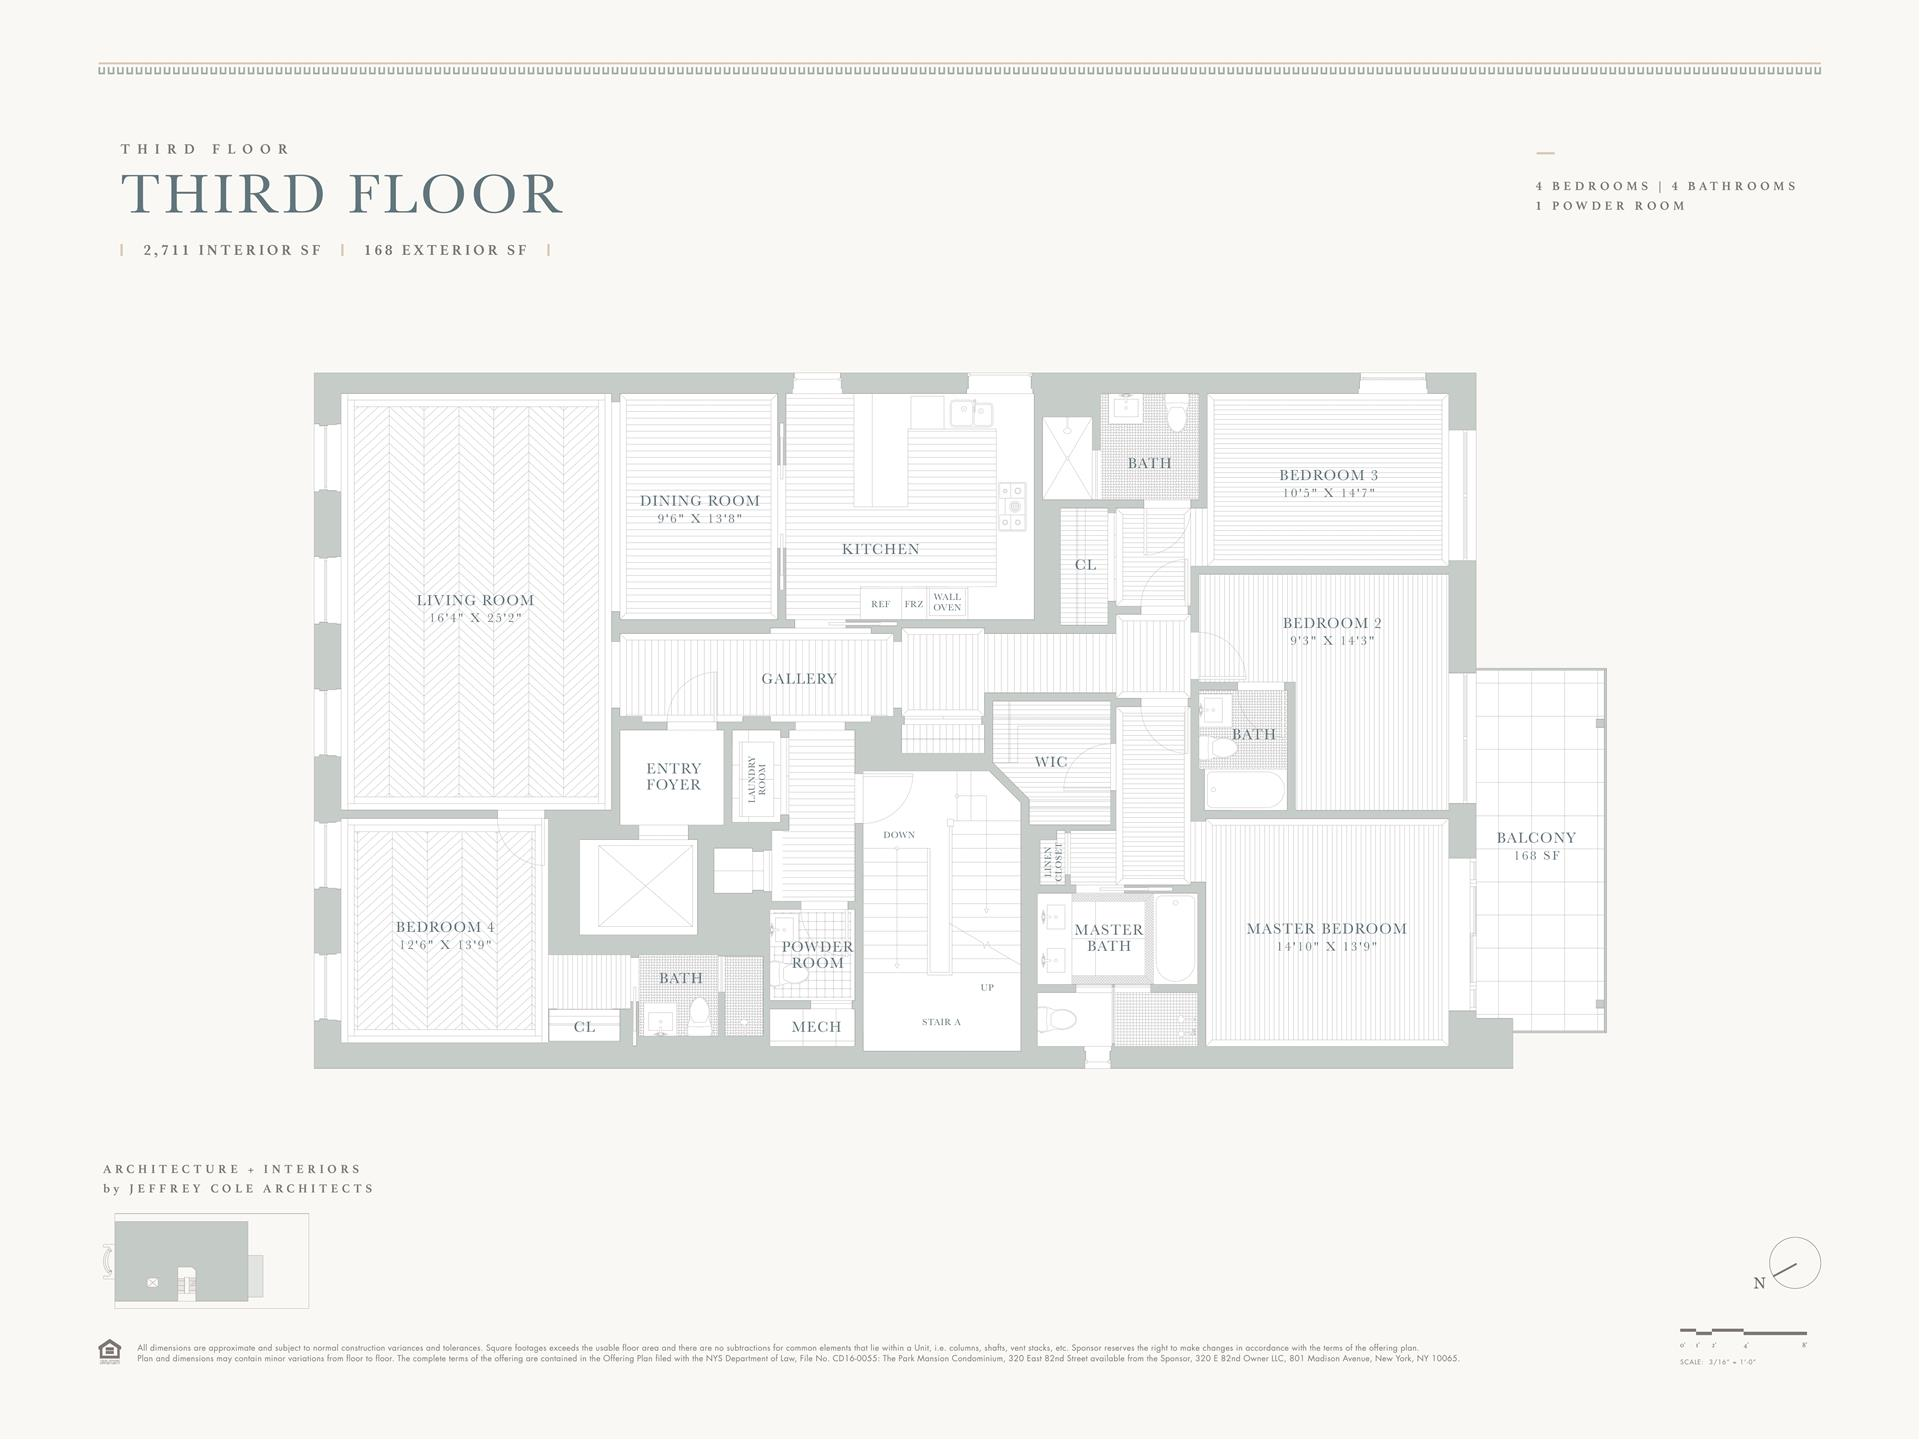 Floor plan of 320 East 82nd St, THIRDFL - Upper East Side, New York